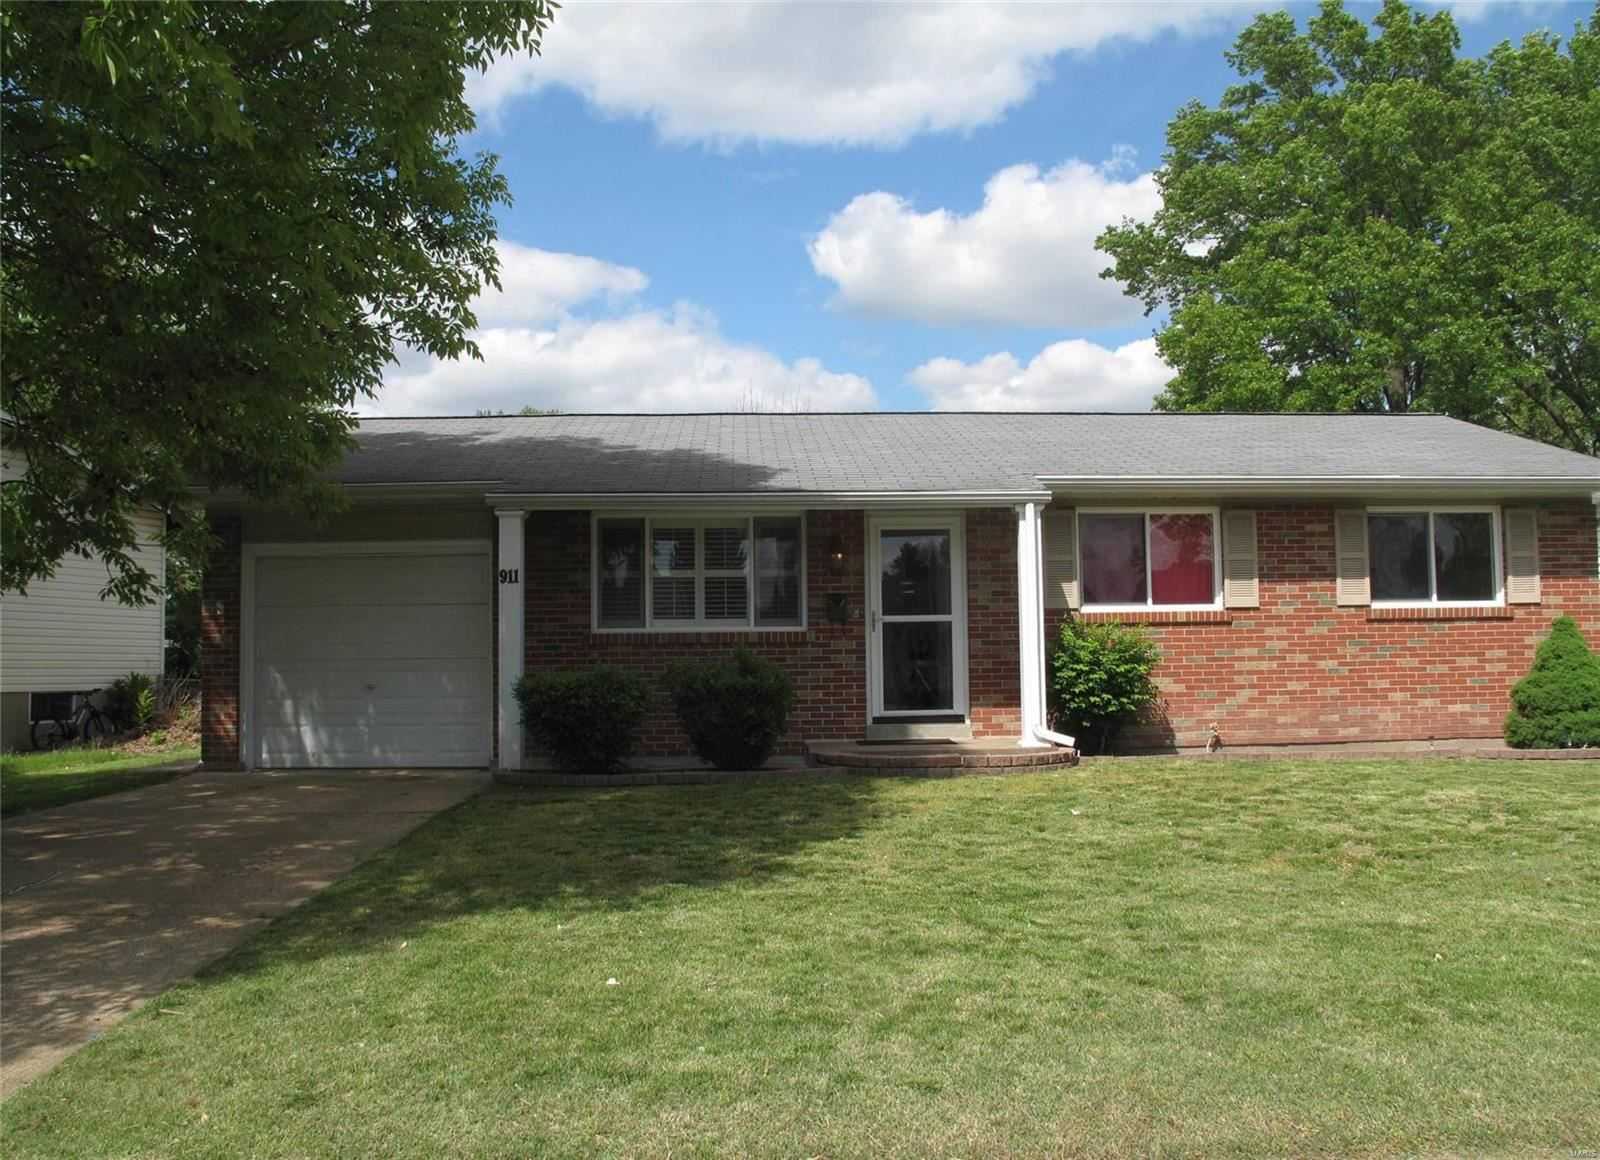 911 Hazelvalley Drive, Hazelwood, MO 63042 - MLS#: 20031070